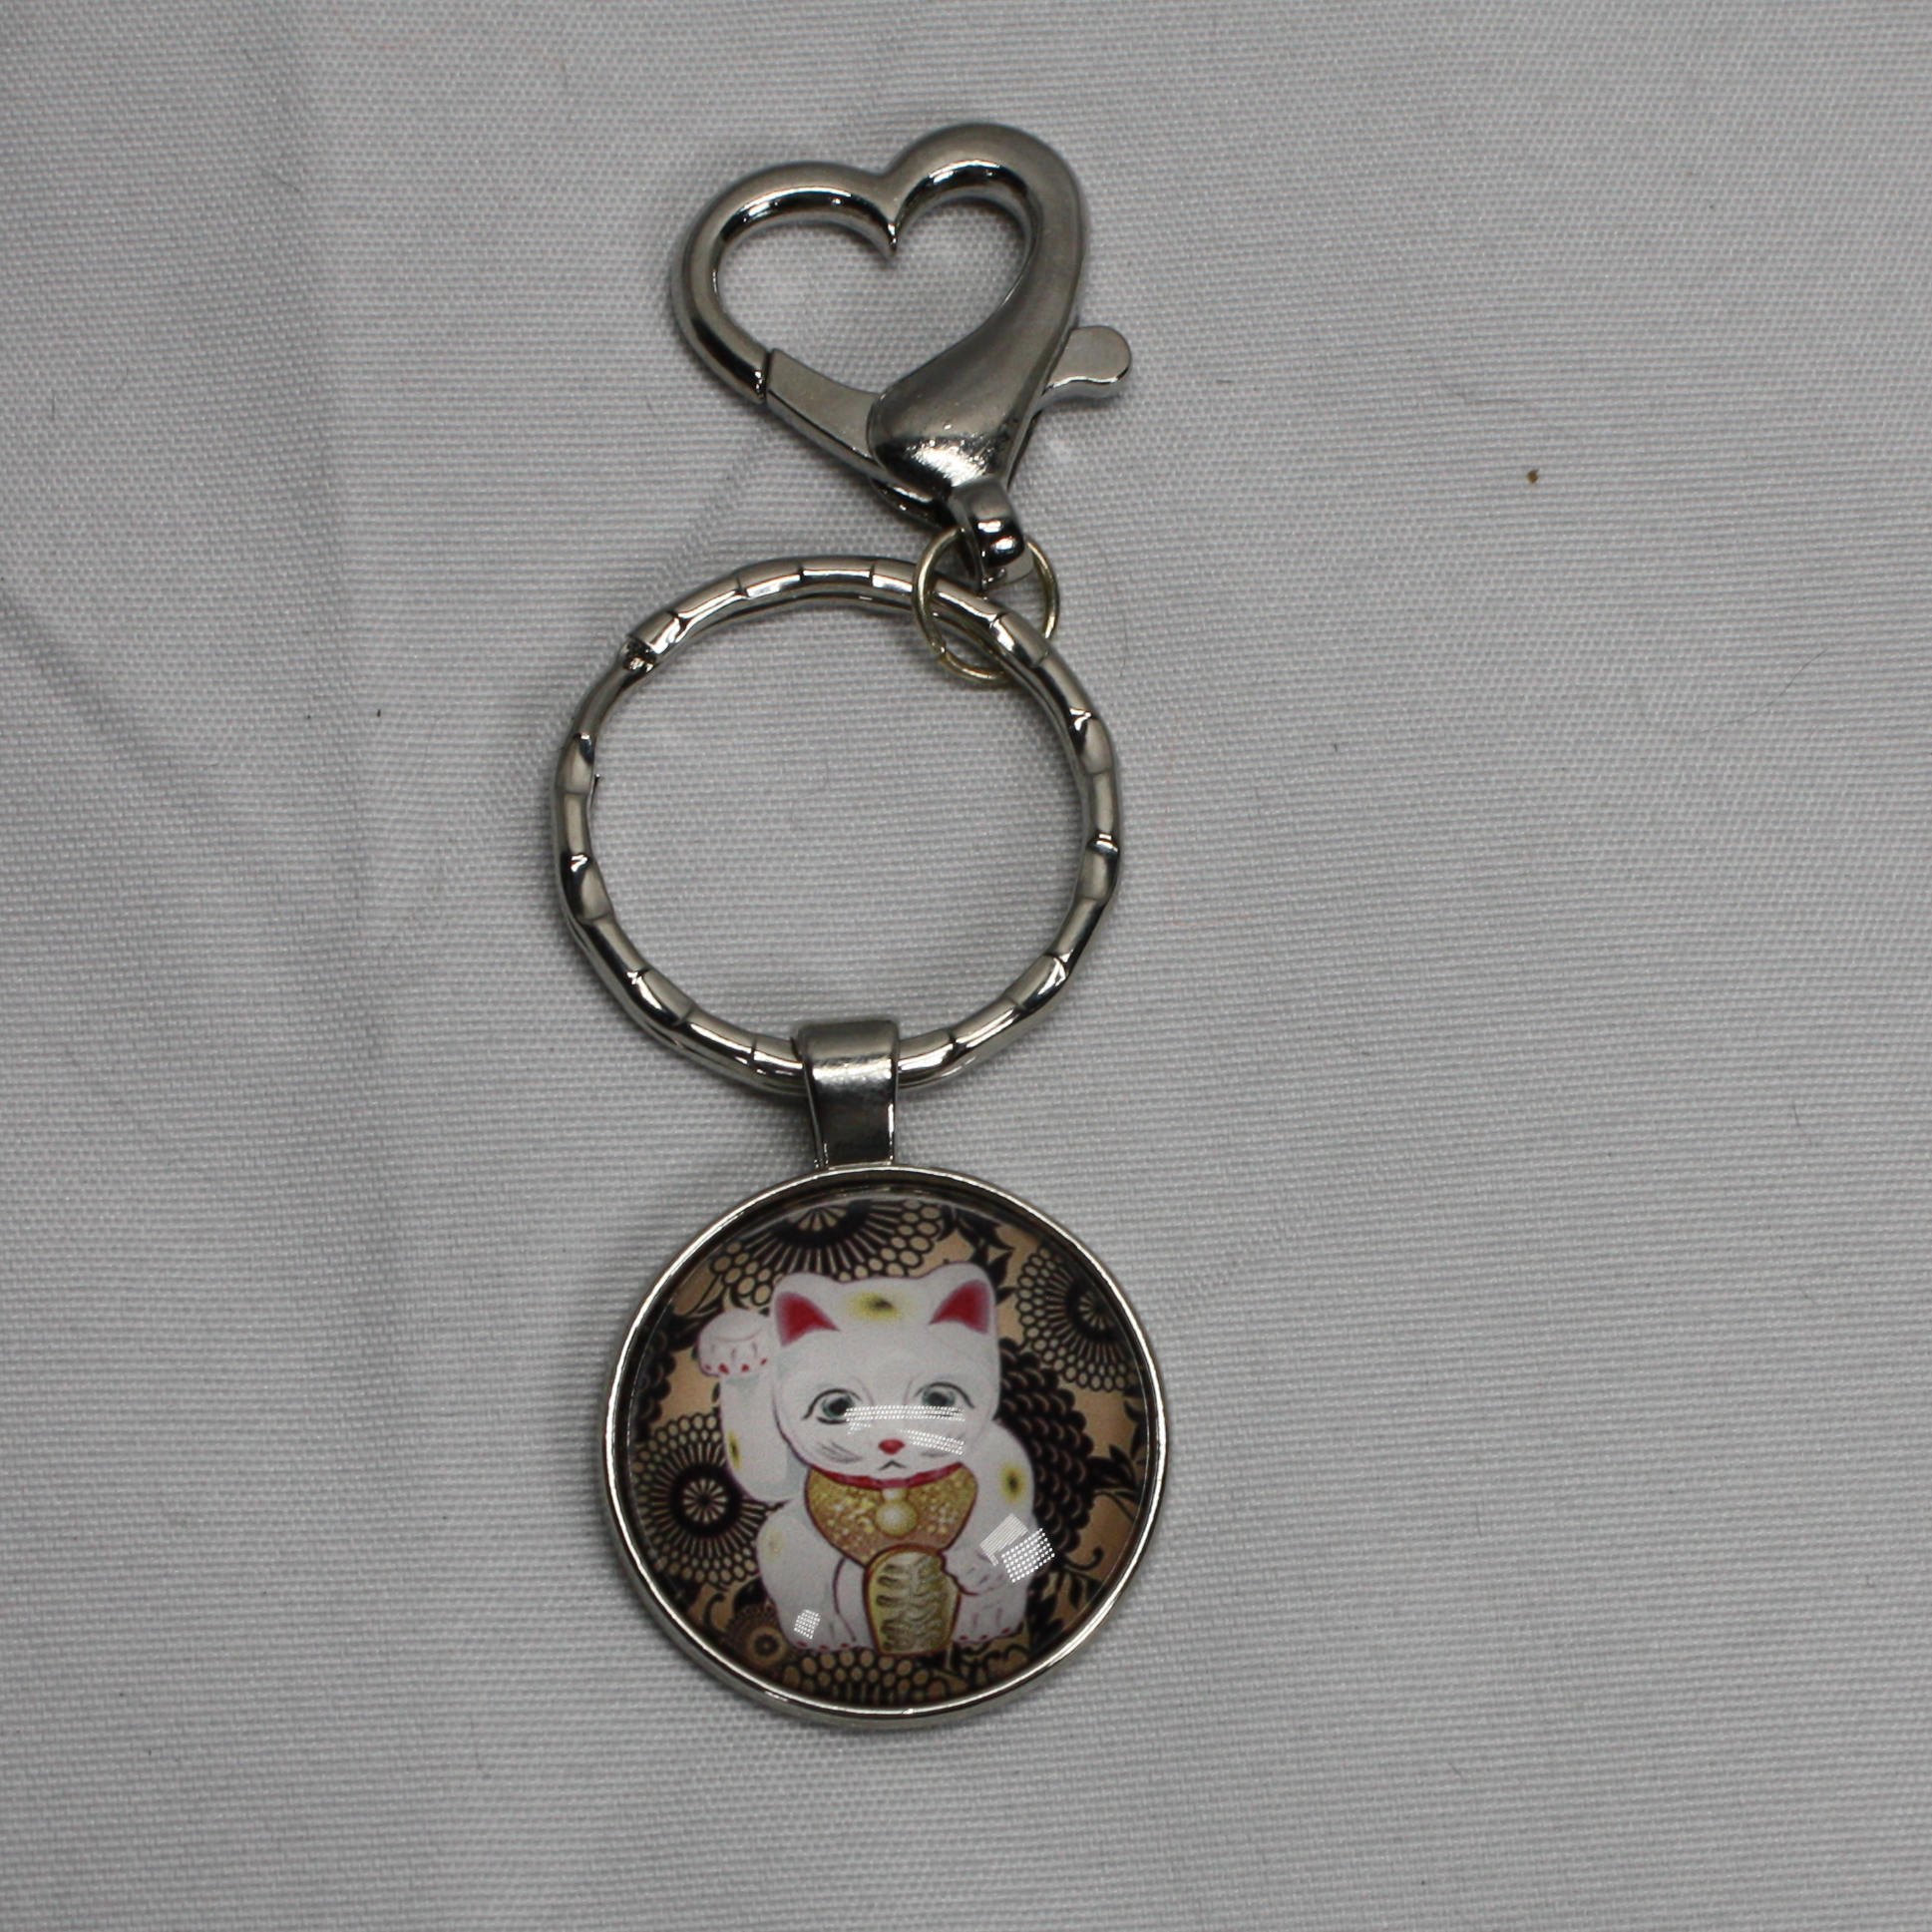 Chinese Kitty keychain